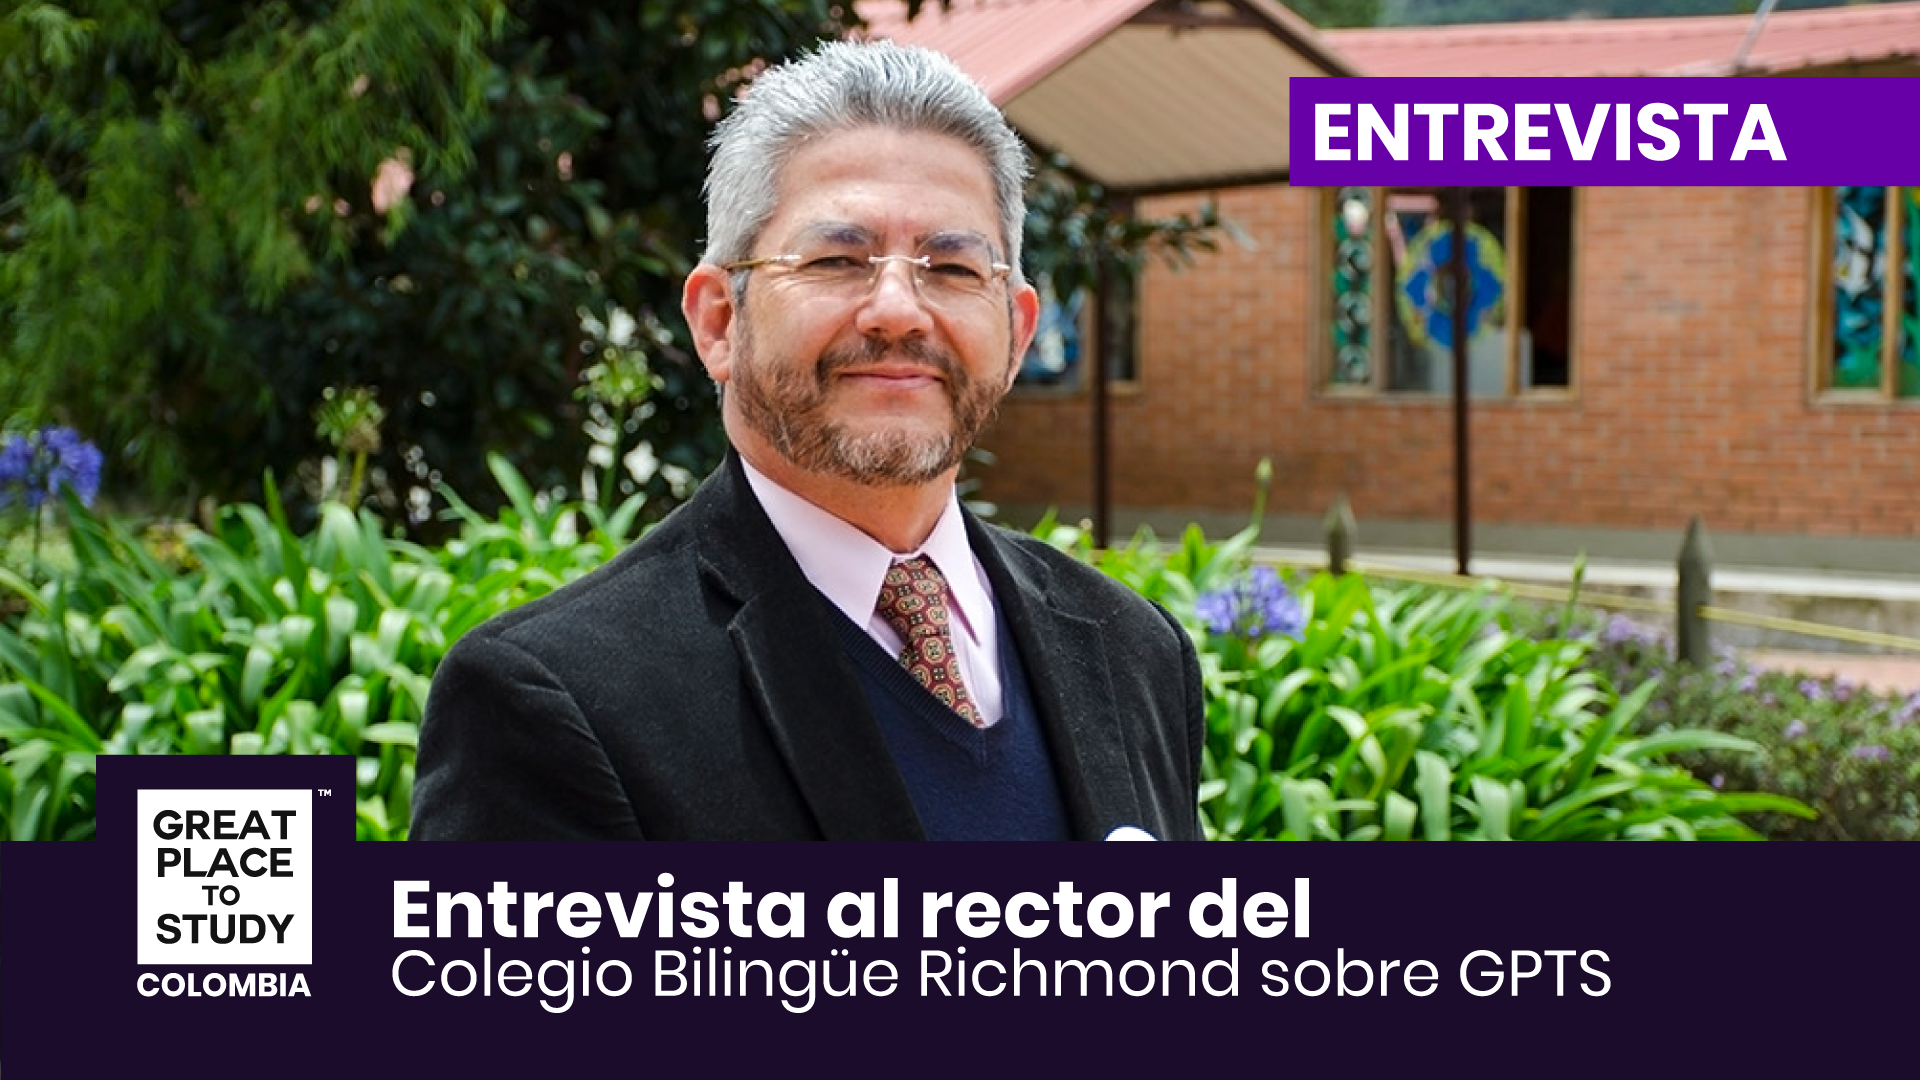 Adalberto Loaiza rector del Colegio Bilingüe Richmond habla sobre Great Place to Study ™